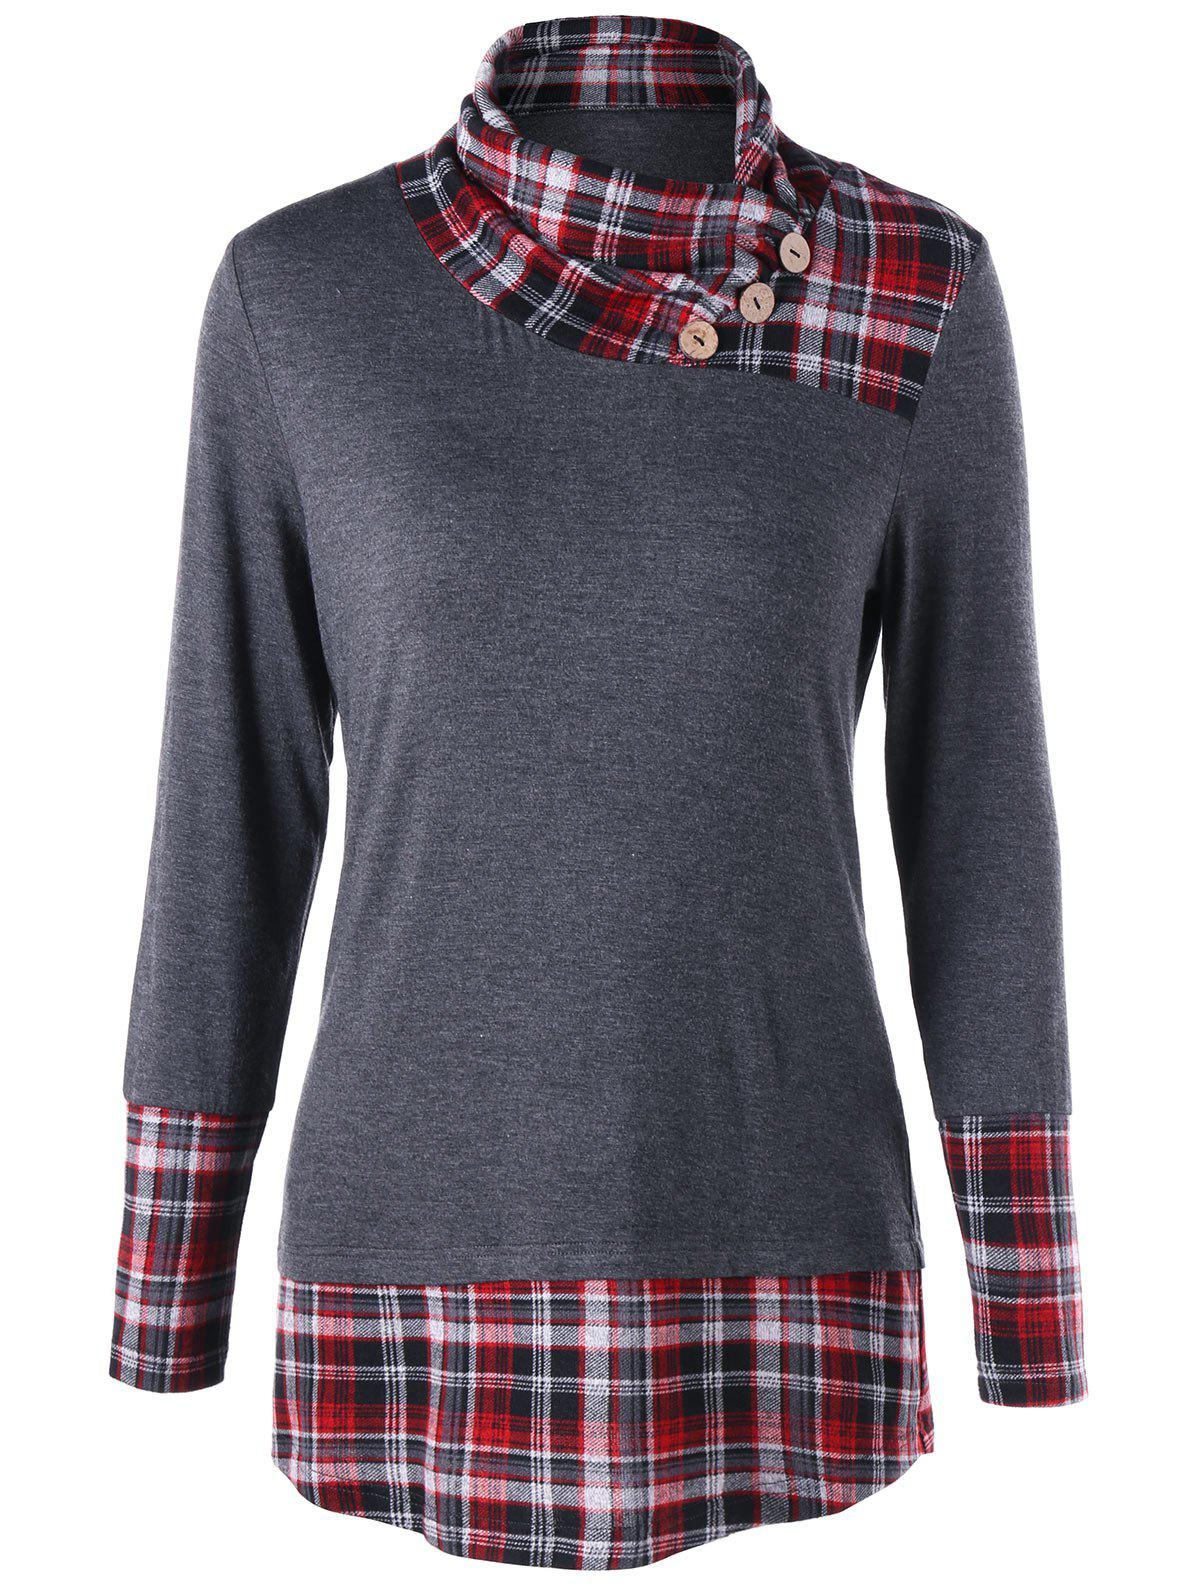 Plaid Hem Tunic TopWOMEN<br><br>Size: 2XL; Color: GRAY; Material: Rayon,Spandex; Shirt Length: Long; Sleeve Length: Full; Collar: Stand-Up Collar; Style: Casual; Embellishment: Button; Pattern Type: Plaid; Season: Fall,Spring; Weight: 0.3000kg; Package Contents: 1 x Top;